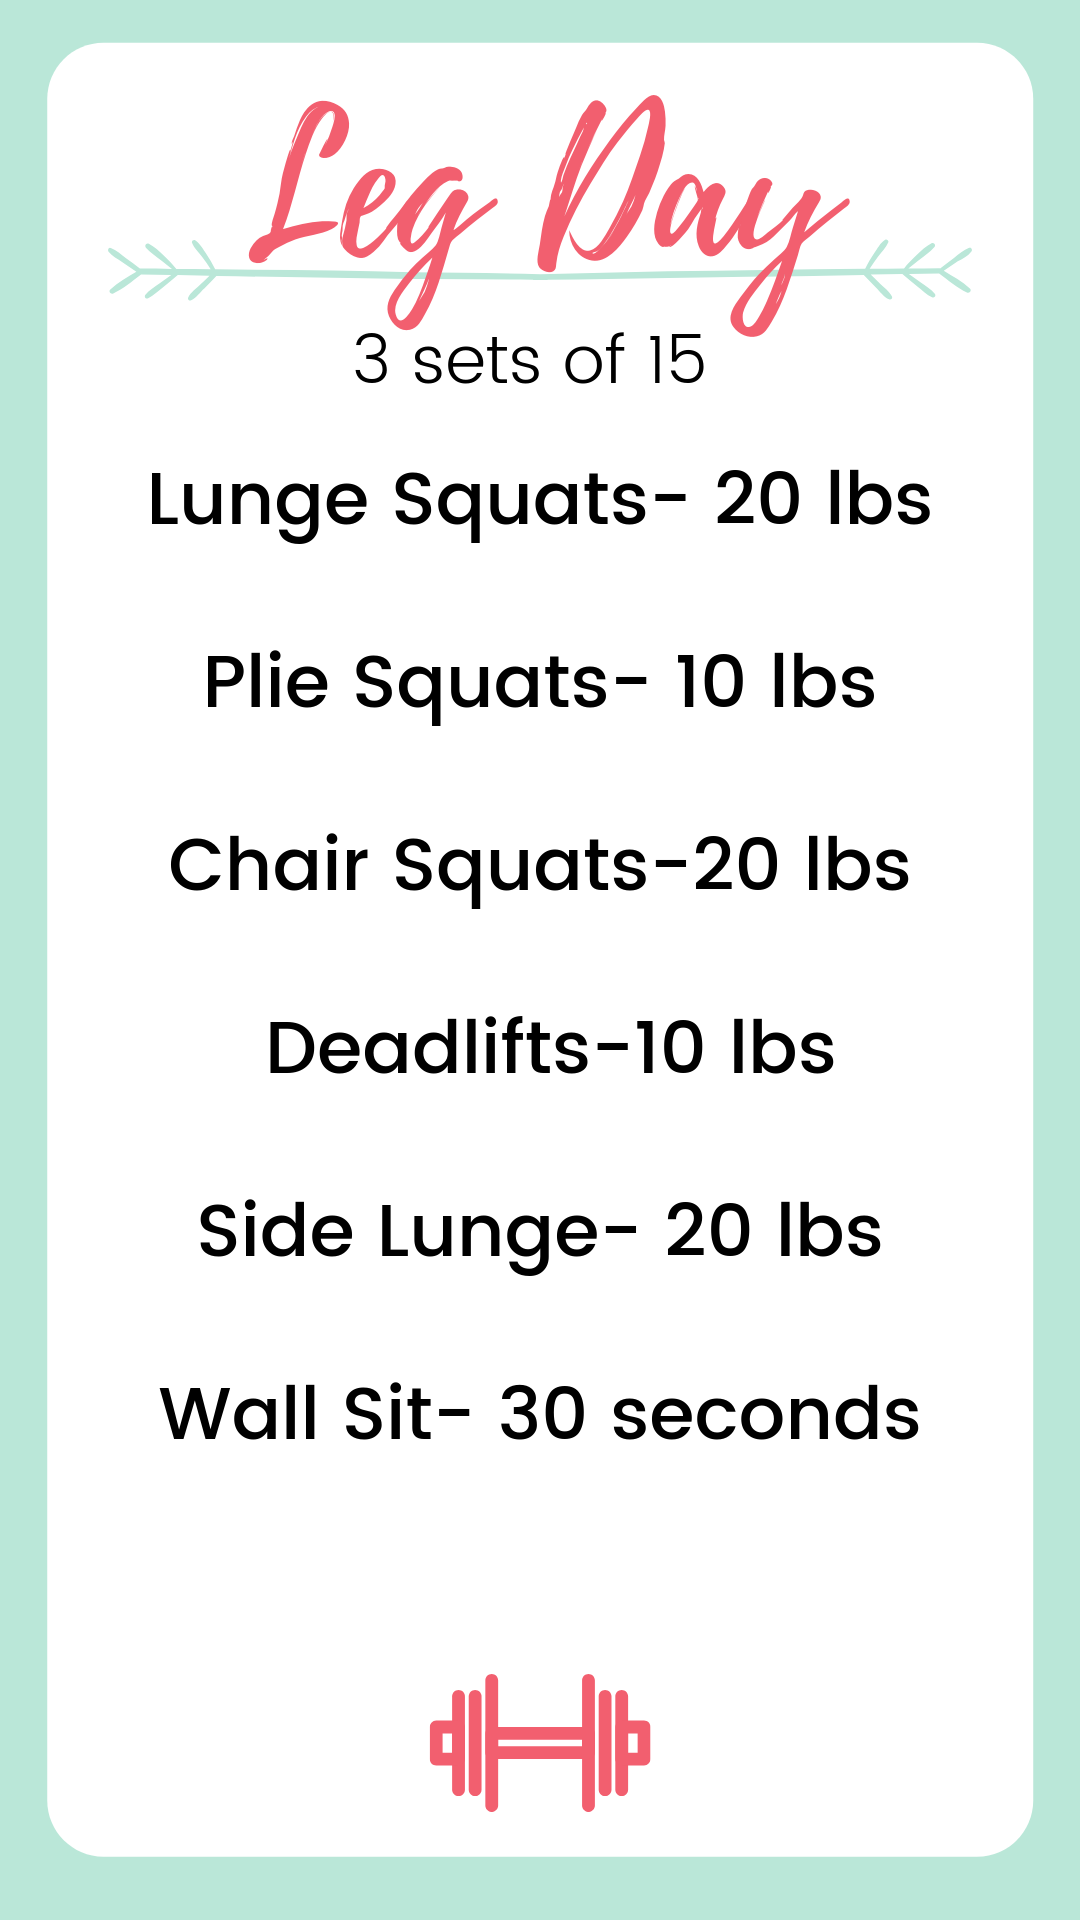 This Leg Day routine is perfect for beginners trying to live a more healthy lifestyle. It's a great